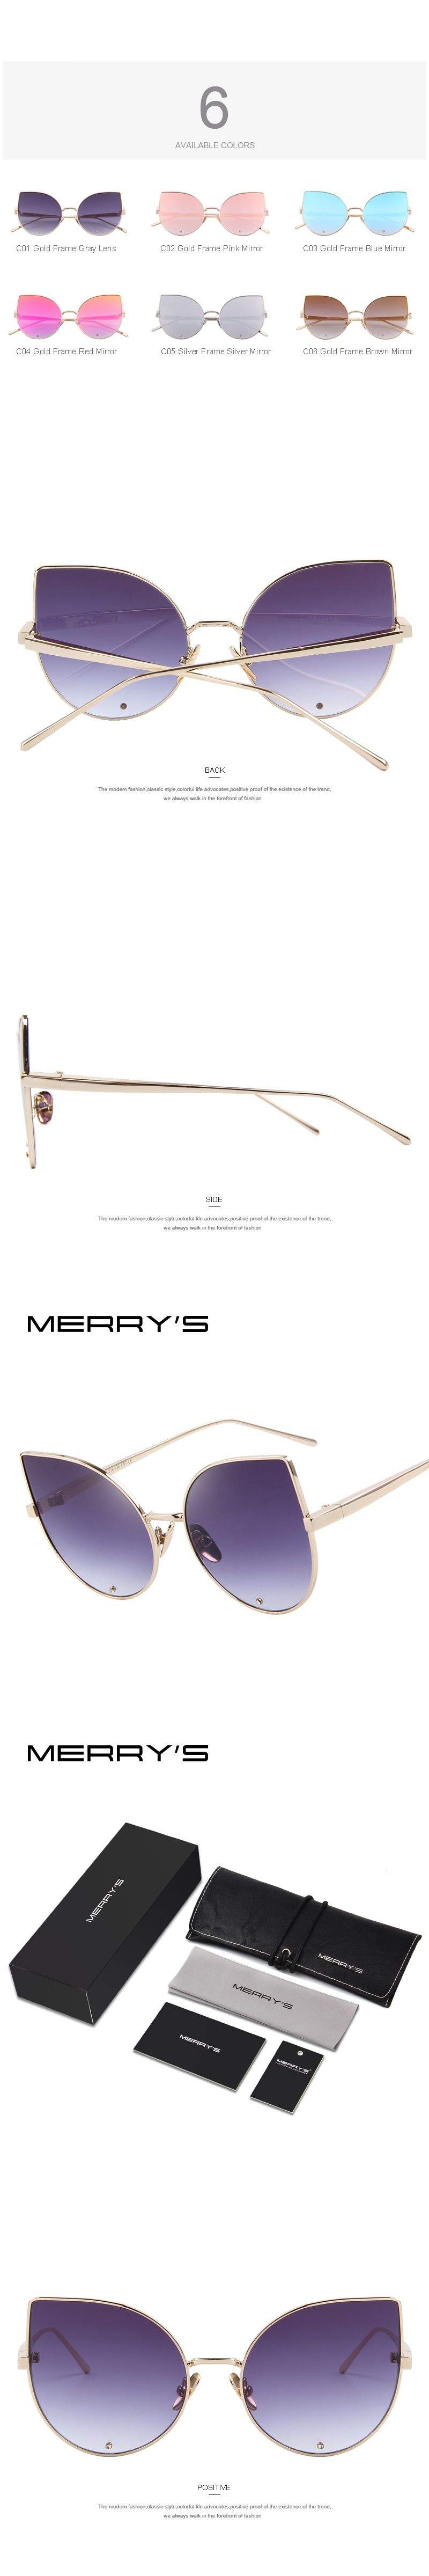 019deb0b270f MERRYS Women Cat Eye Sunglasses Classic Brand Designer Sunglasses Luxury Diamond  Encrusted Lens S8026